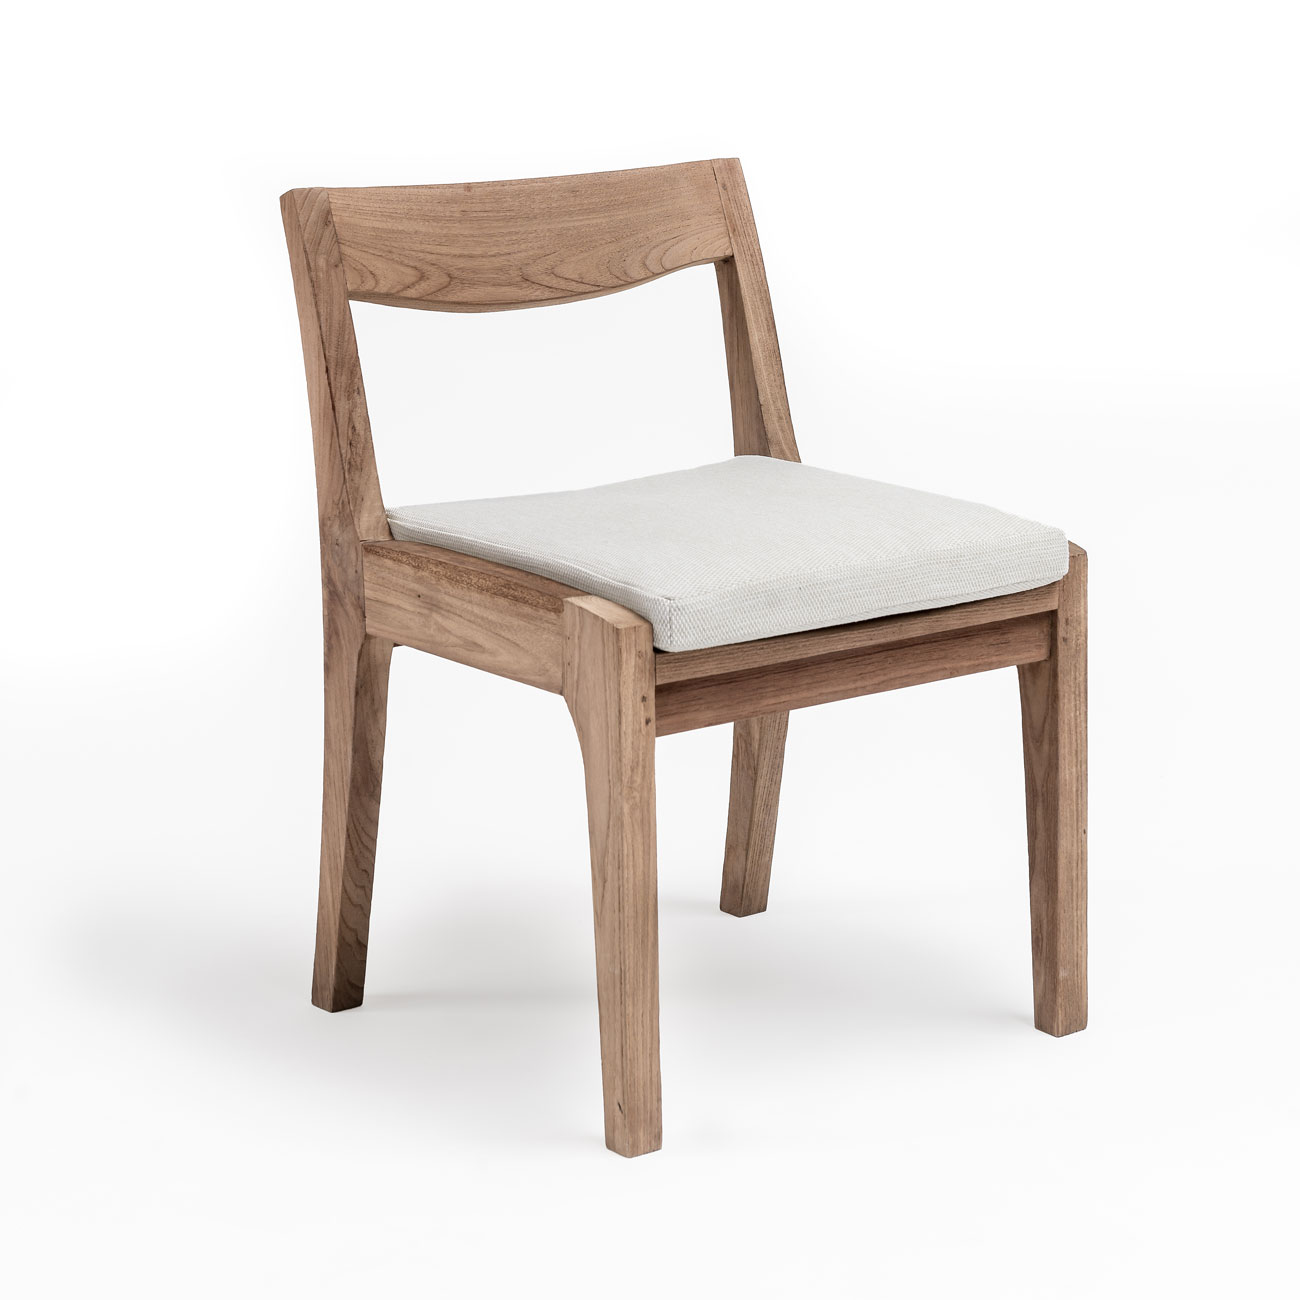 Gommaire Curve Teak Dining Chair  Luxury Outdoor Living